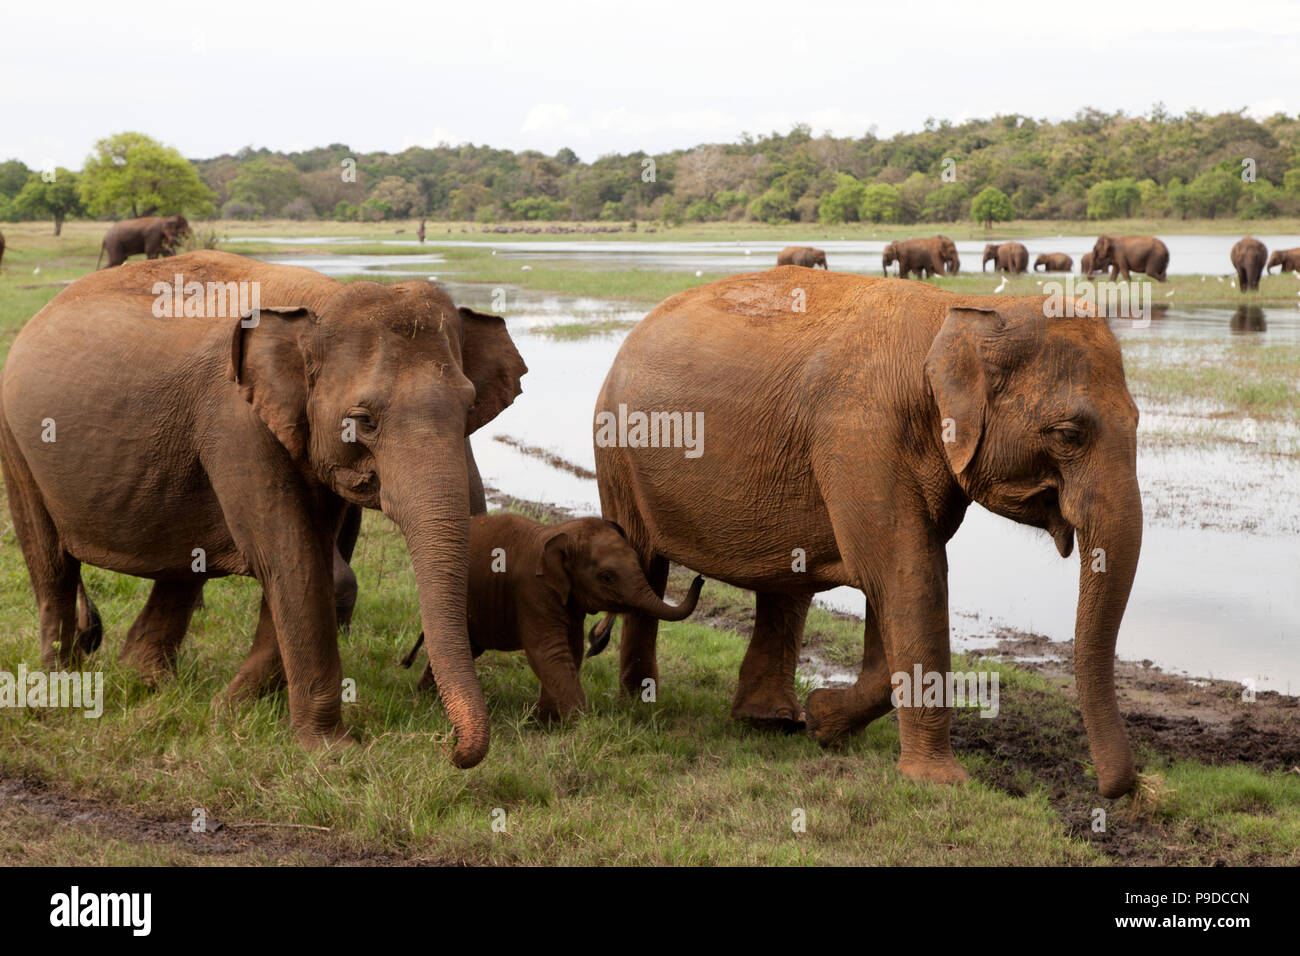 Asian Elephants (Elephas maximus) interact and socialise while feeding by the reservoir at in Minneriya National Park in Sri Lanka - Stock Image